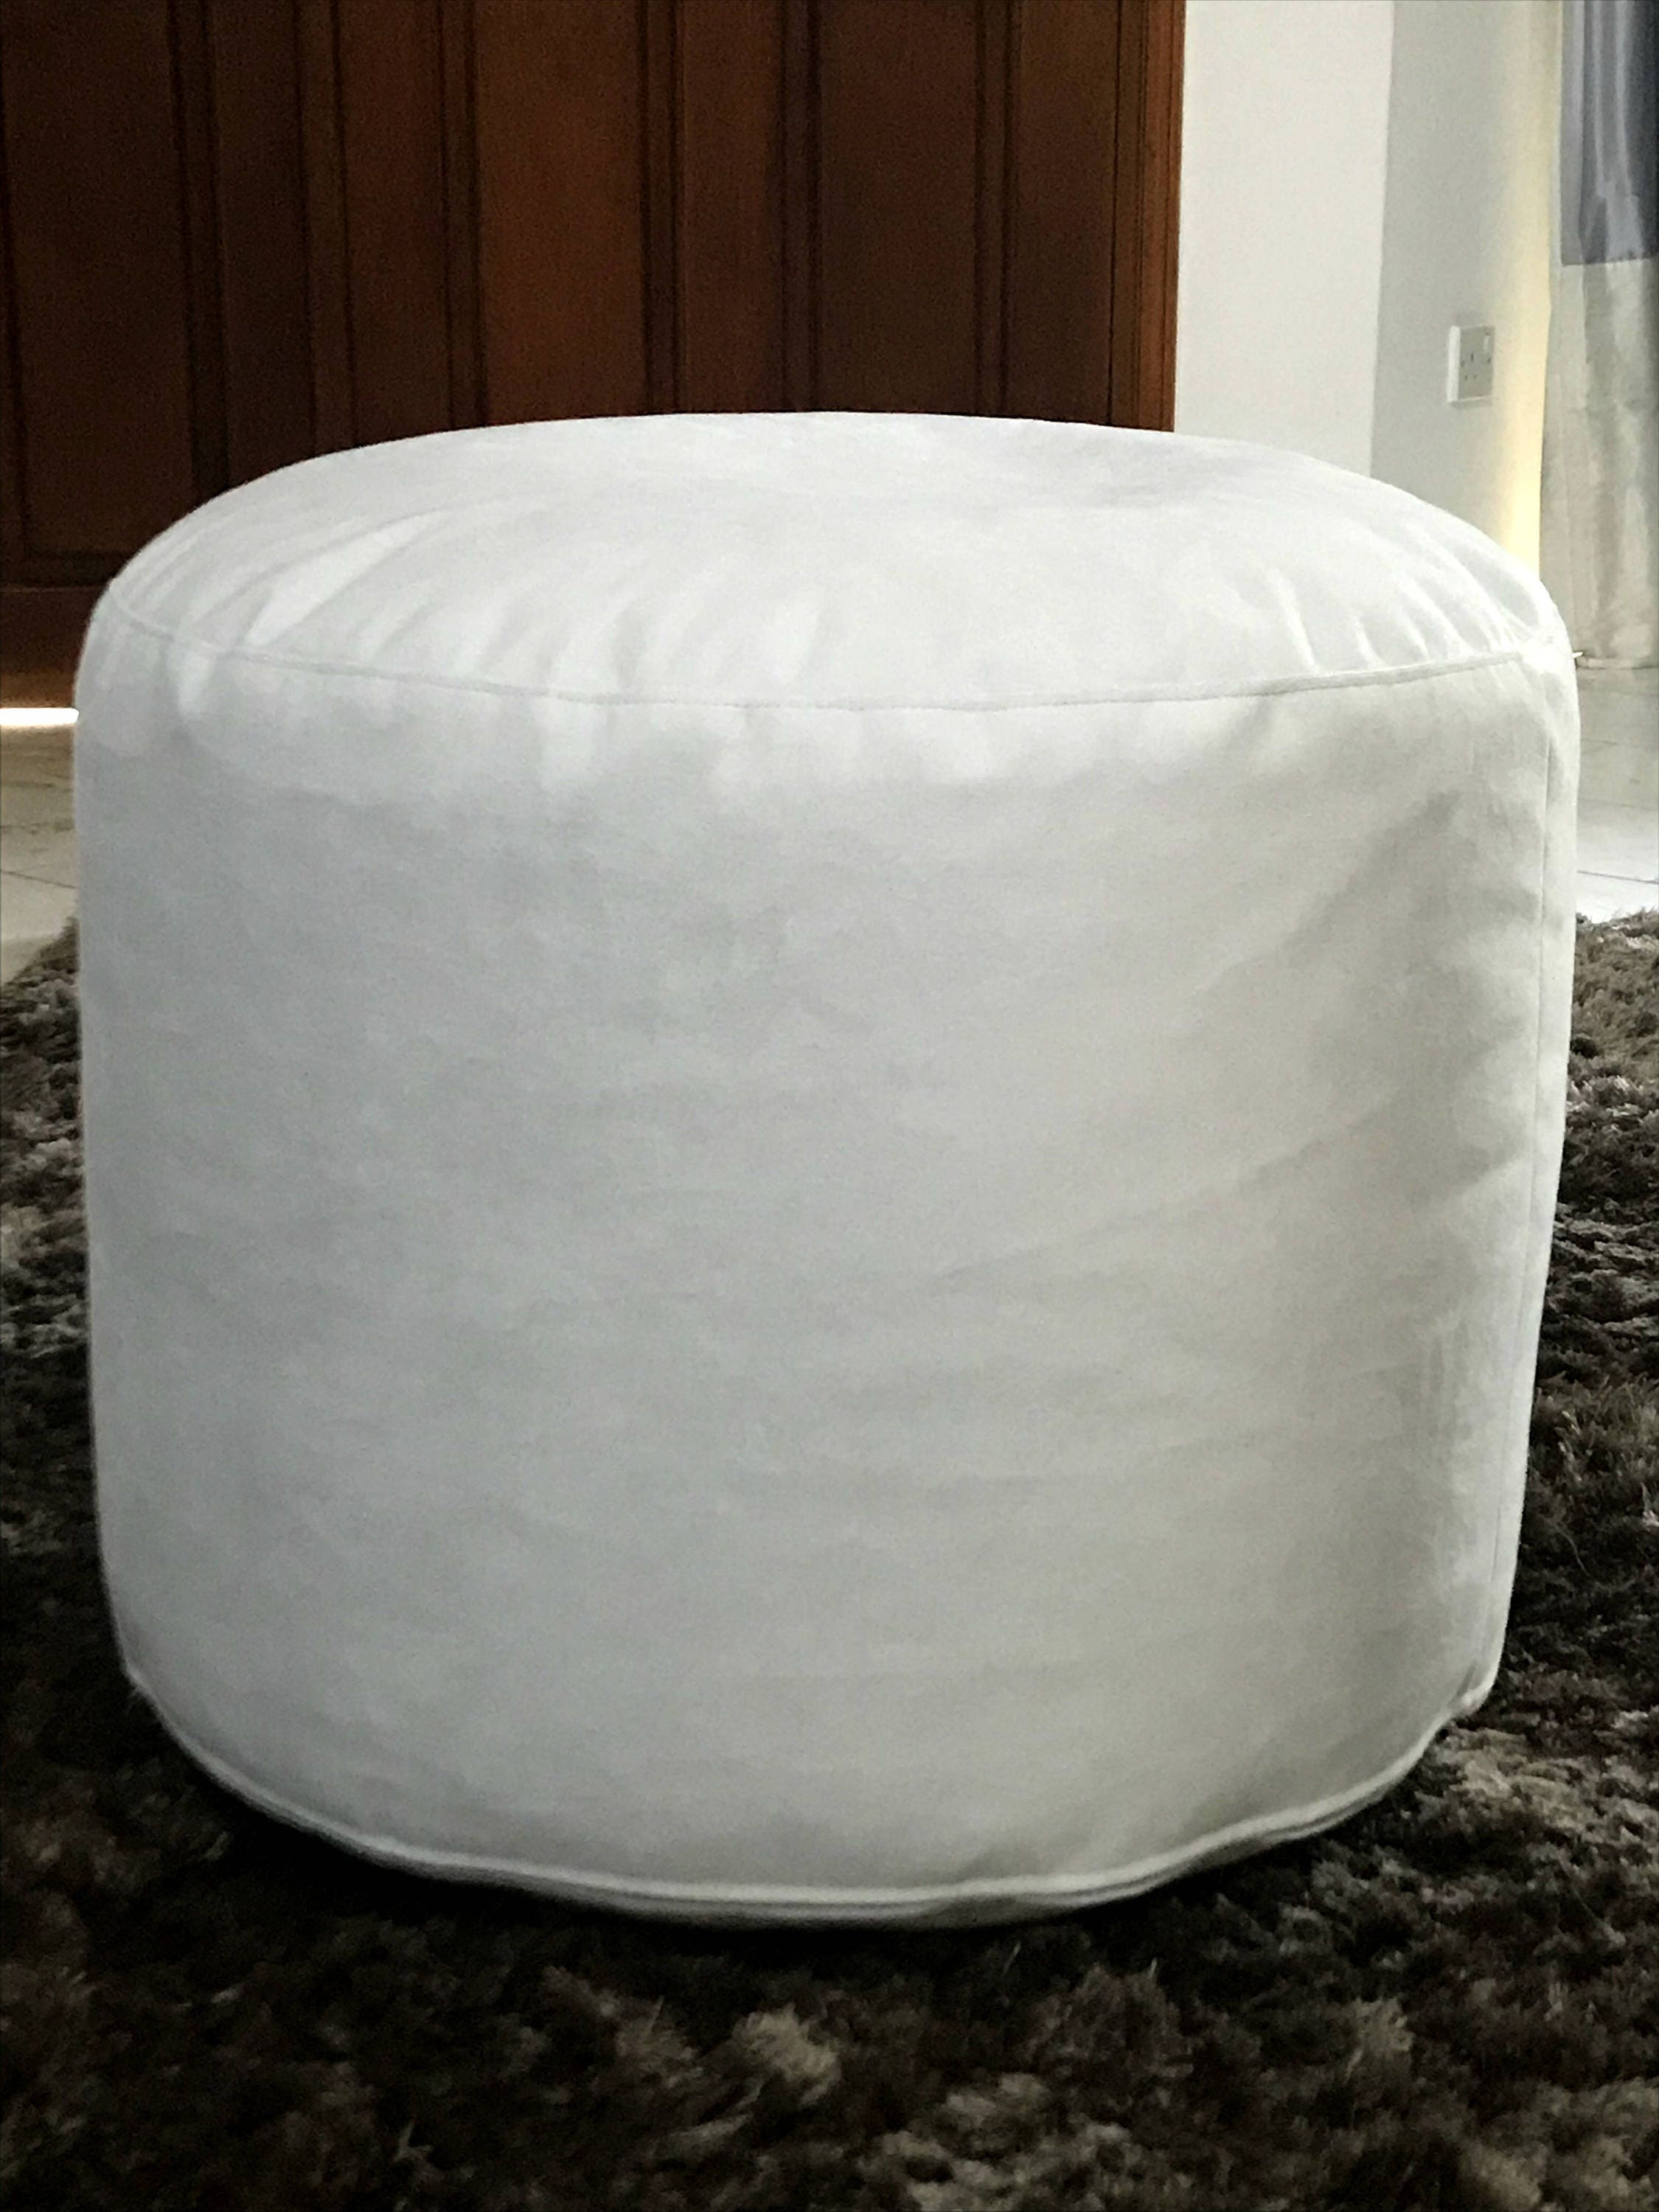 Peachy Ash Grey Velvet Round Pouf Pale Grey Velvet Pouf With Caraccident5 Cool Chair Designs And Ideas Caraccident5Info